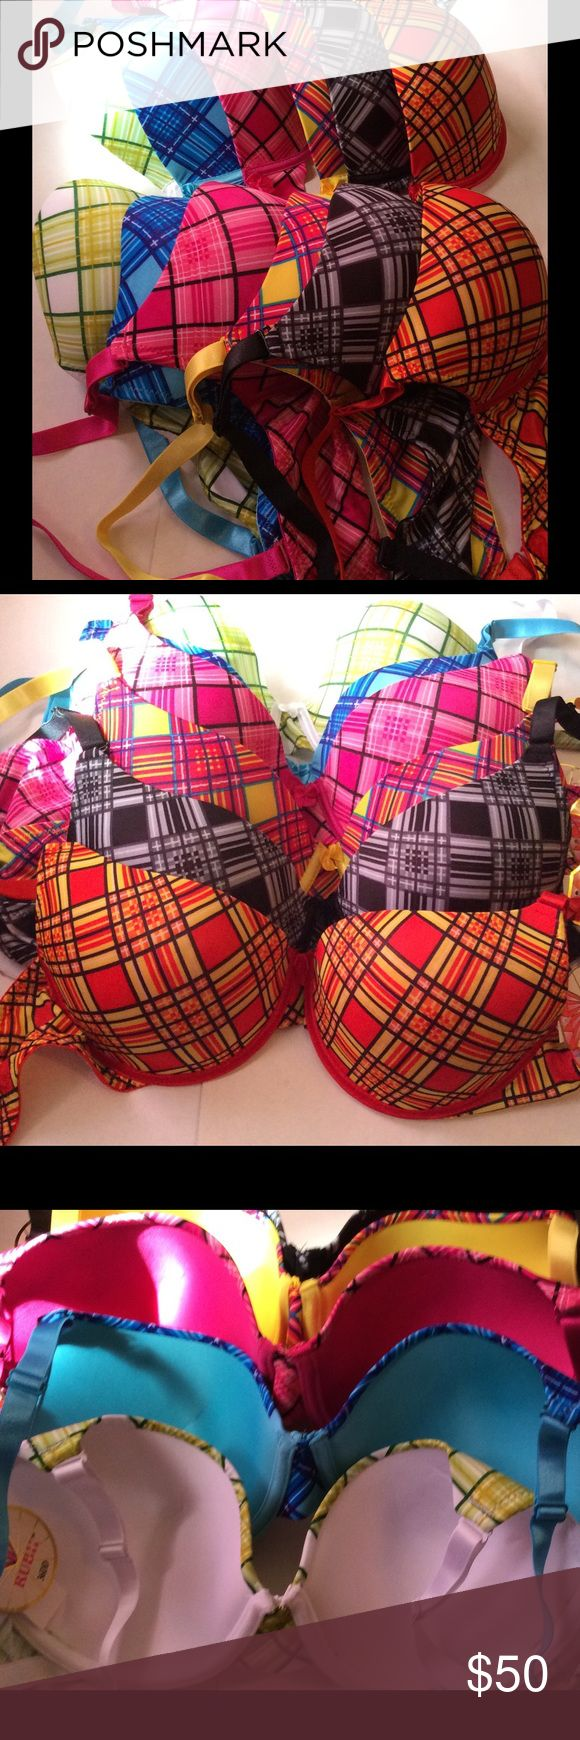 6 Underwire Bra's Demi Cup NWT 6 Underwire Bra's,... Demi Cup Padded/Lightly Lined. adjustable shoulder strap/ removable straps,.. 3 adjustable hooks. NWT The price is for 6 Bra's. Rubii Intimates & Sleepwear Bras